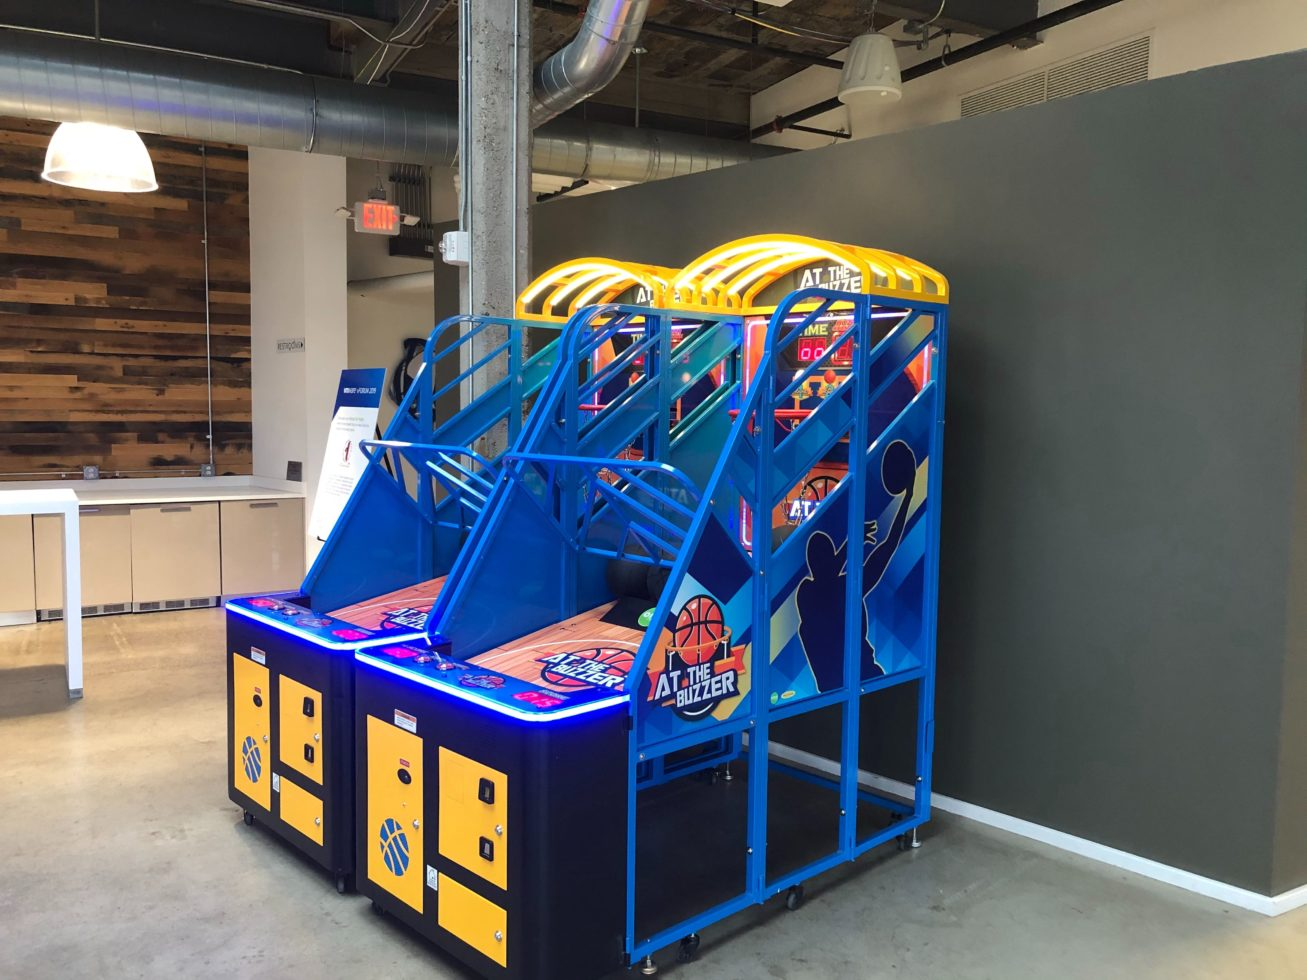 At the Buzzer Basketeball Arcade Games